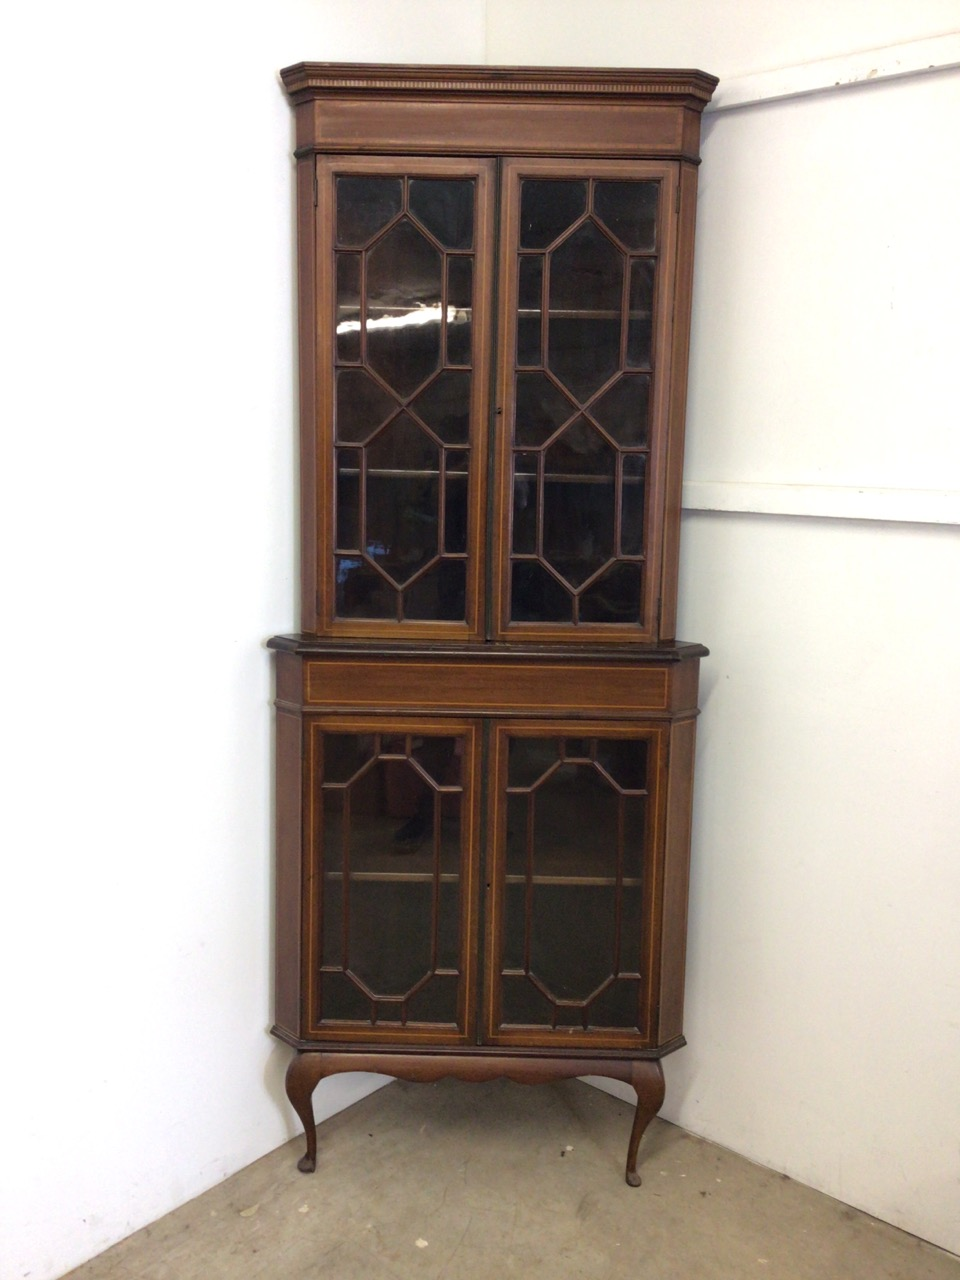 An inlaid Edwardian two piece corner cupboard each section with double doors to shelves W:70cm x D: